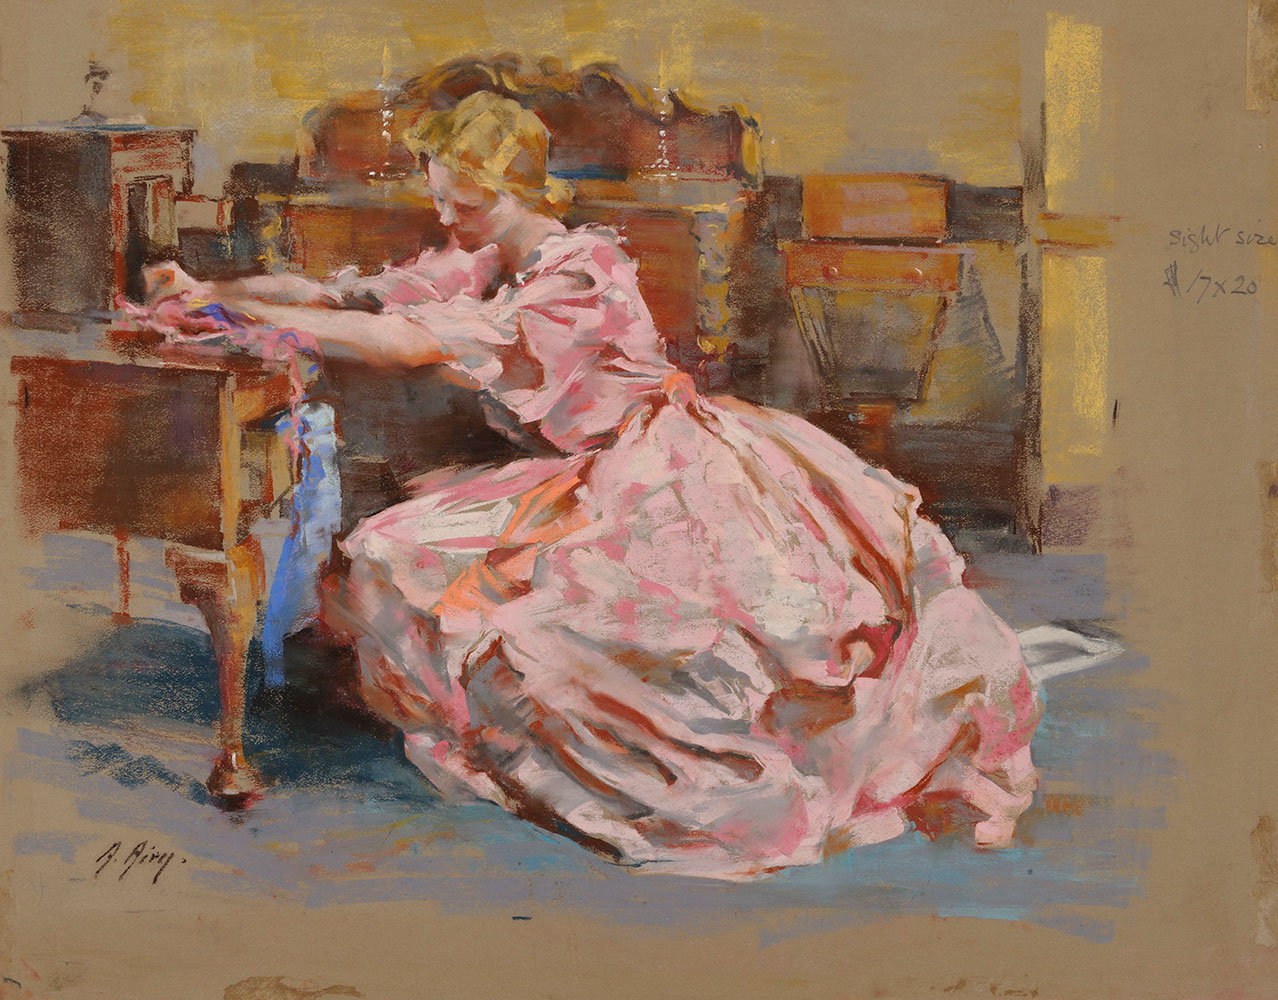 Painting by Anna Airy called Trinkets, 48x59cm, 1951